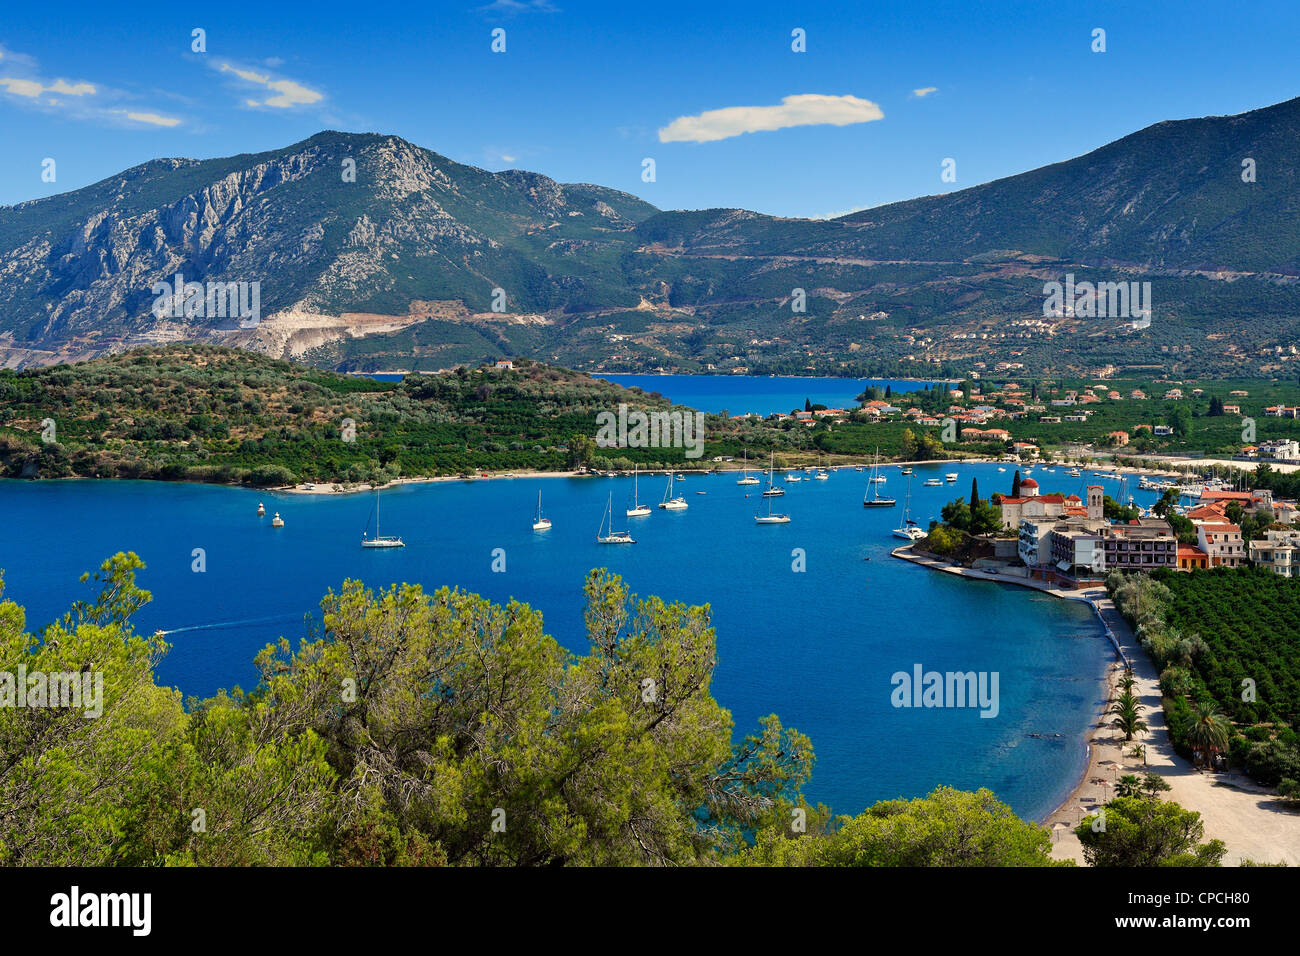 The village Ancient Epidaurus in Peloponnese, Greece - Stock Image